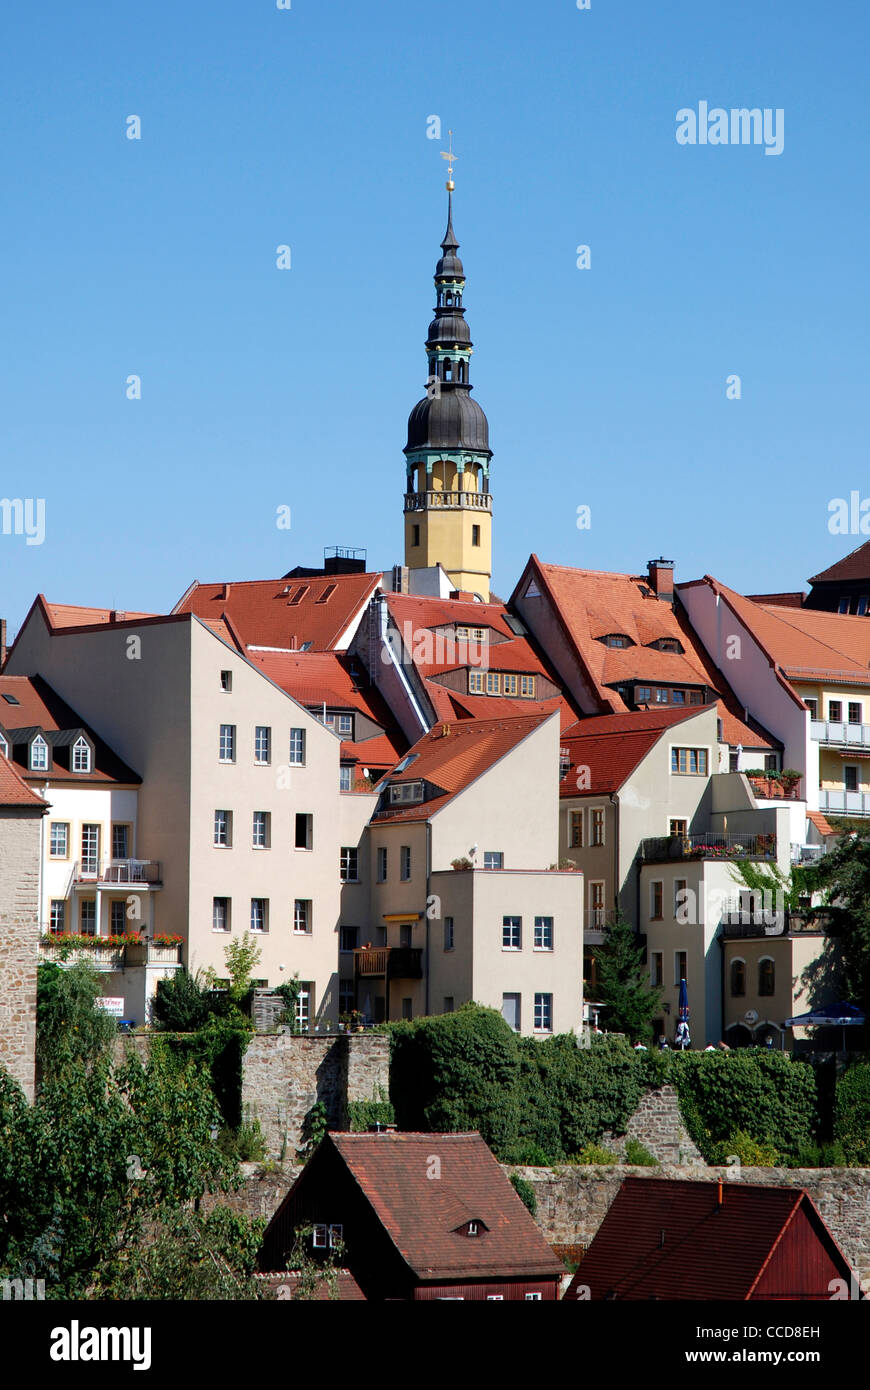 Old town of Bautzen with the historical City hall. - Stock Image